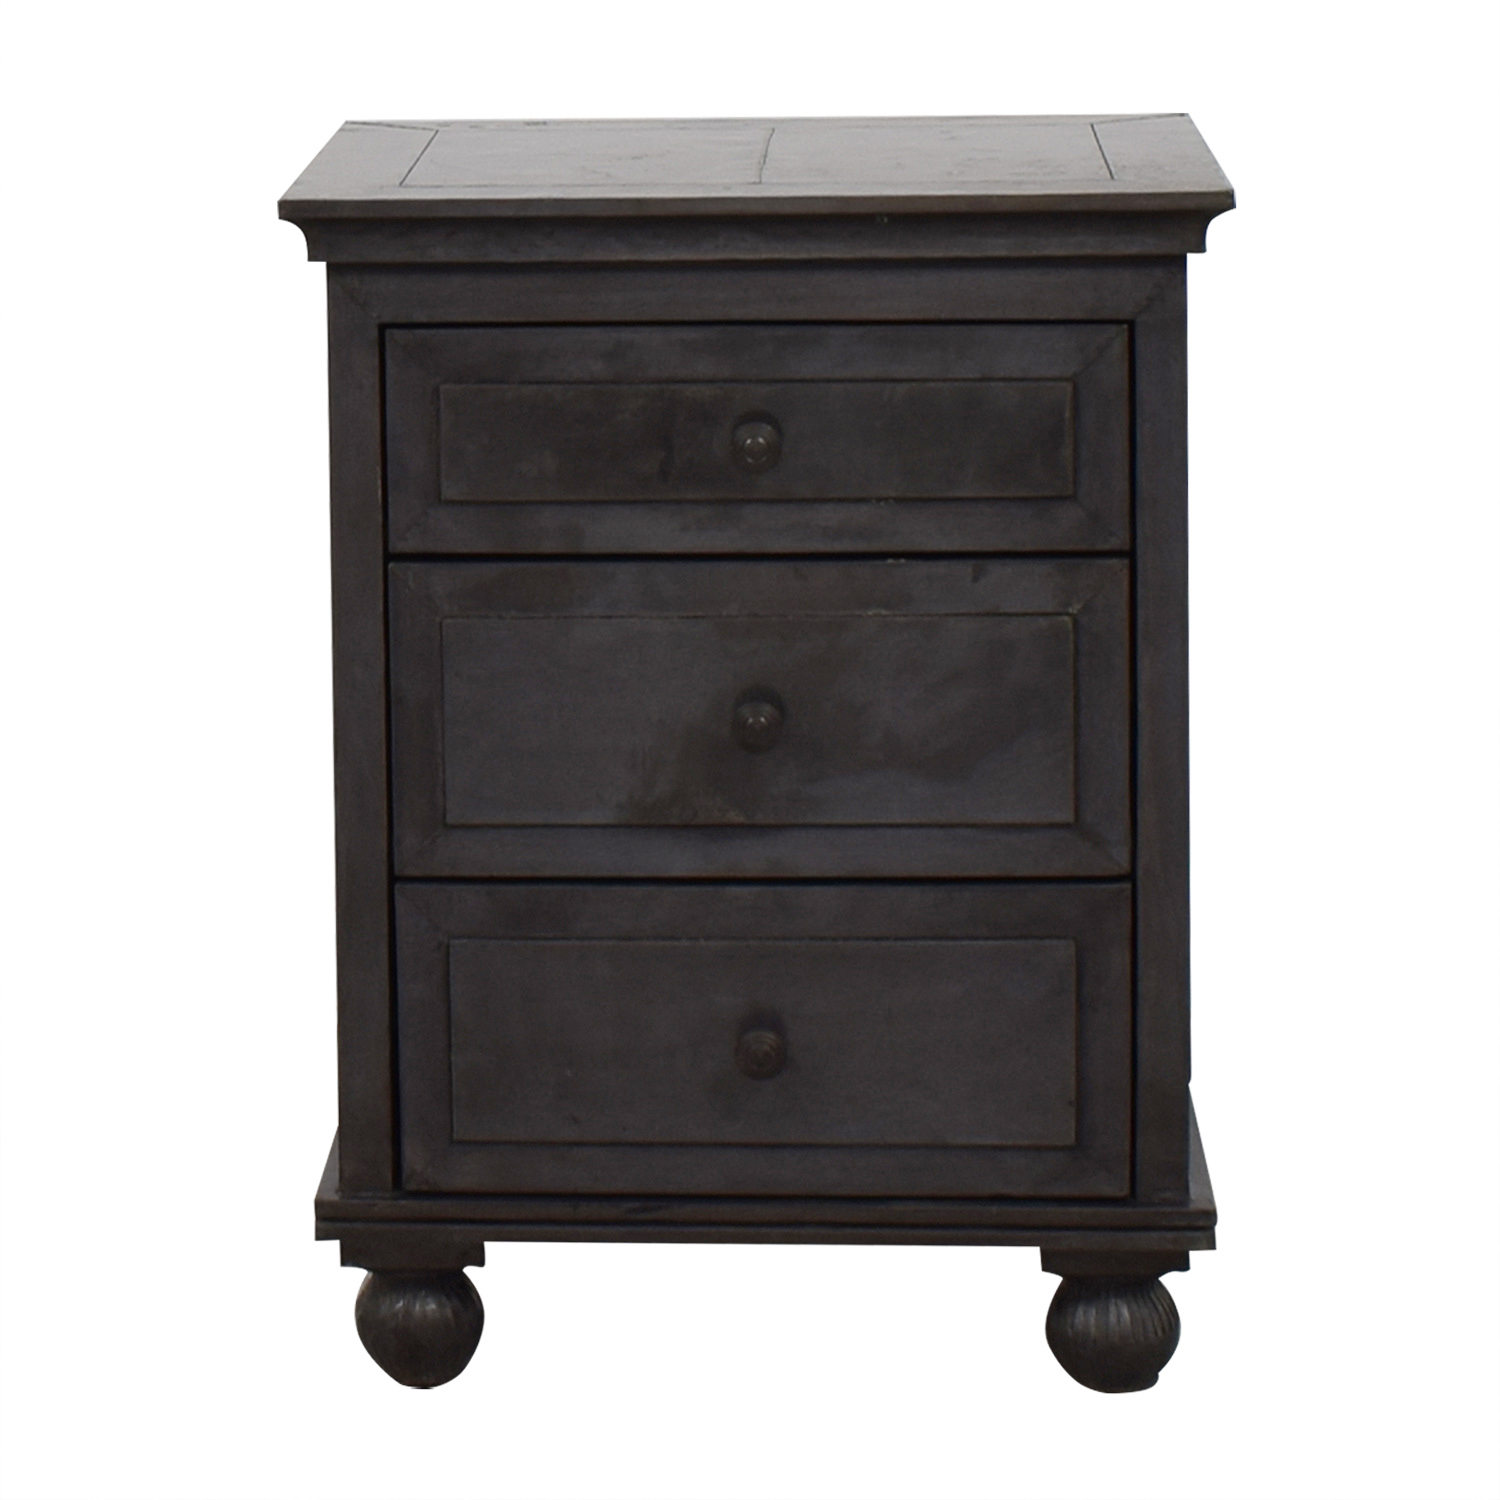 off restoration hardware annecy metal zinc finish three drawer end table accent wrapped nightstand with counter height ikea multi colored chest target kids desk tall console